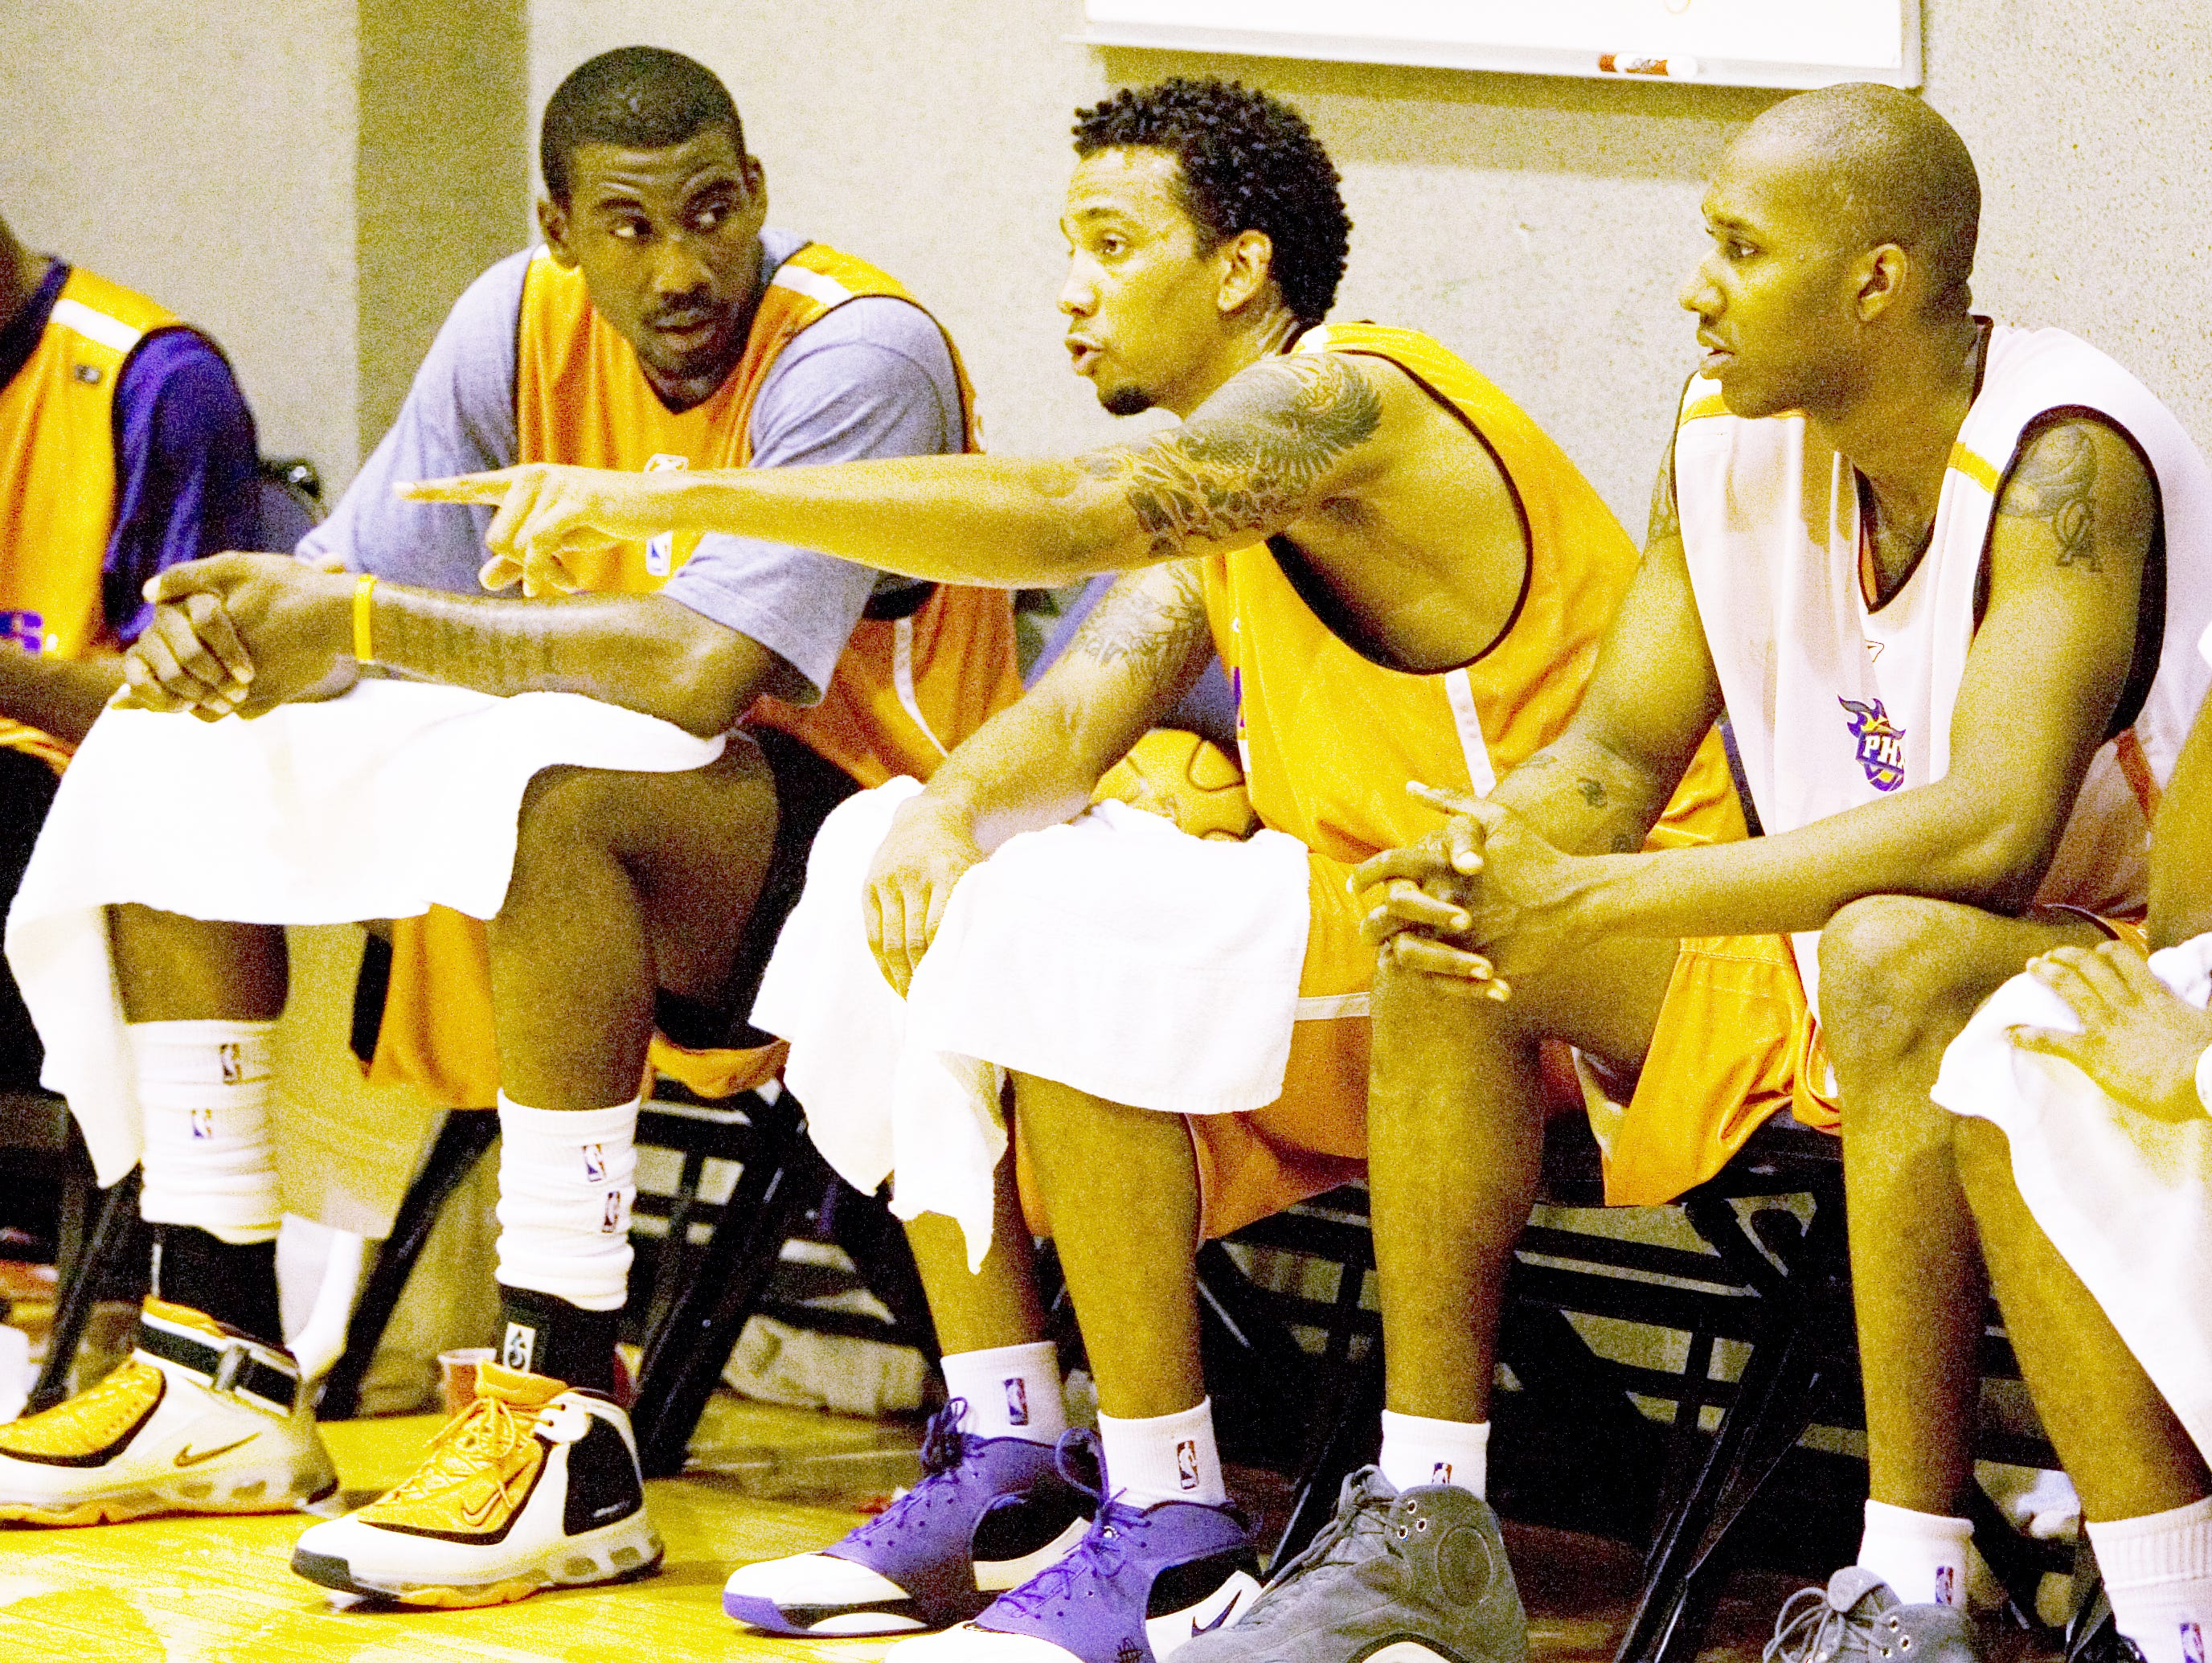 Tommy Smith (center) talks to Amar'e Stoudemire during Phoenix Suns practice at US Airways Center on July 5, 2006.